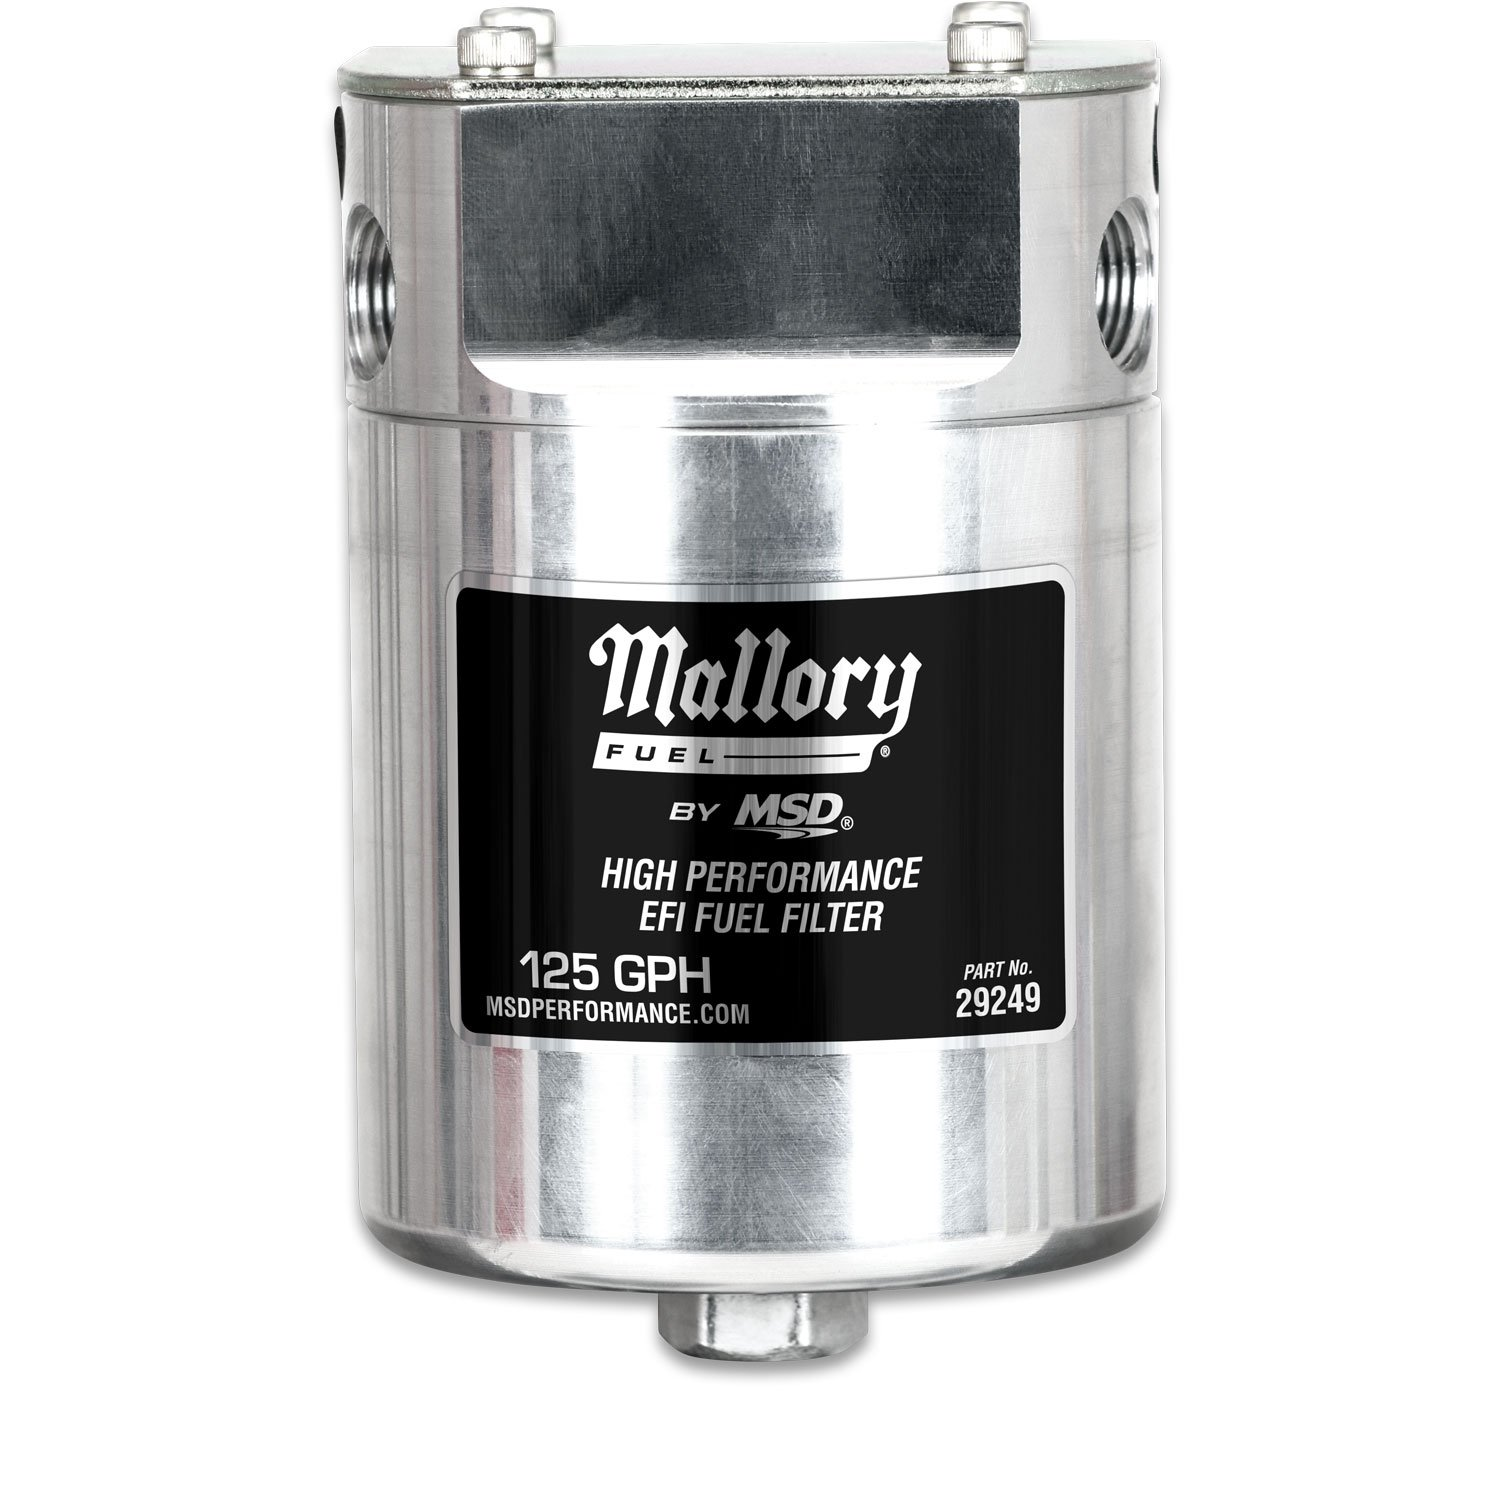 Mallory High Pressure EFI Fuel Filter